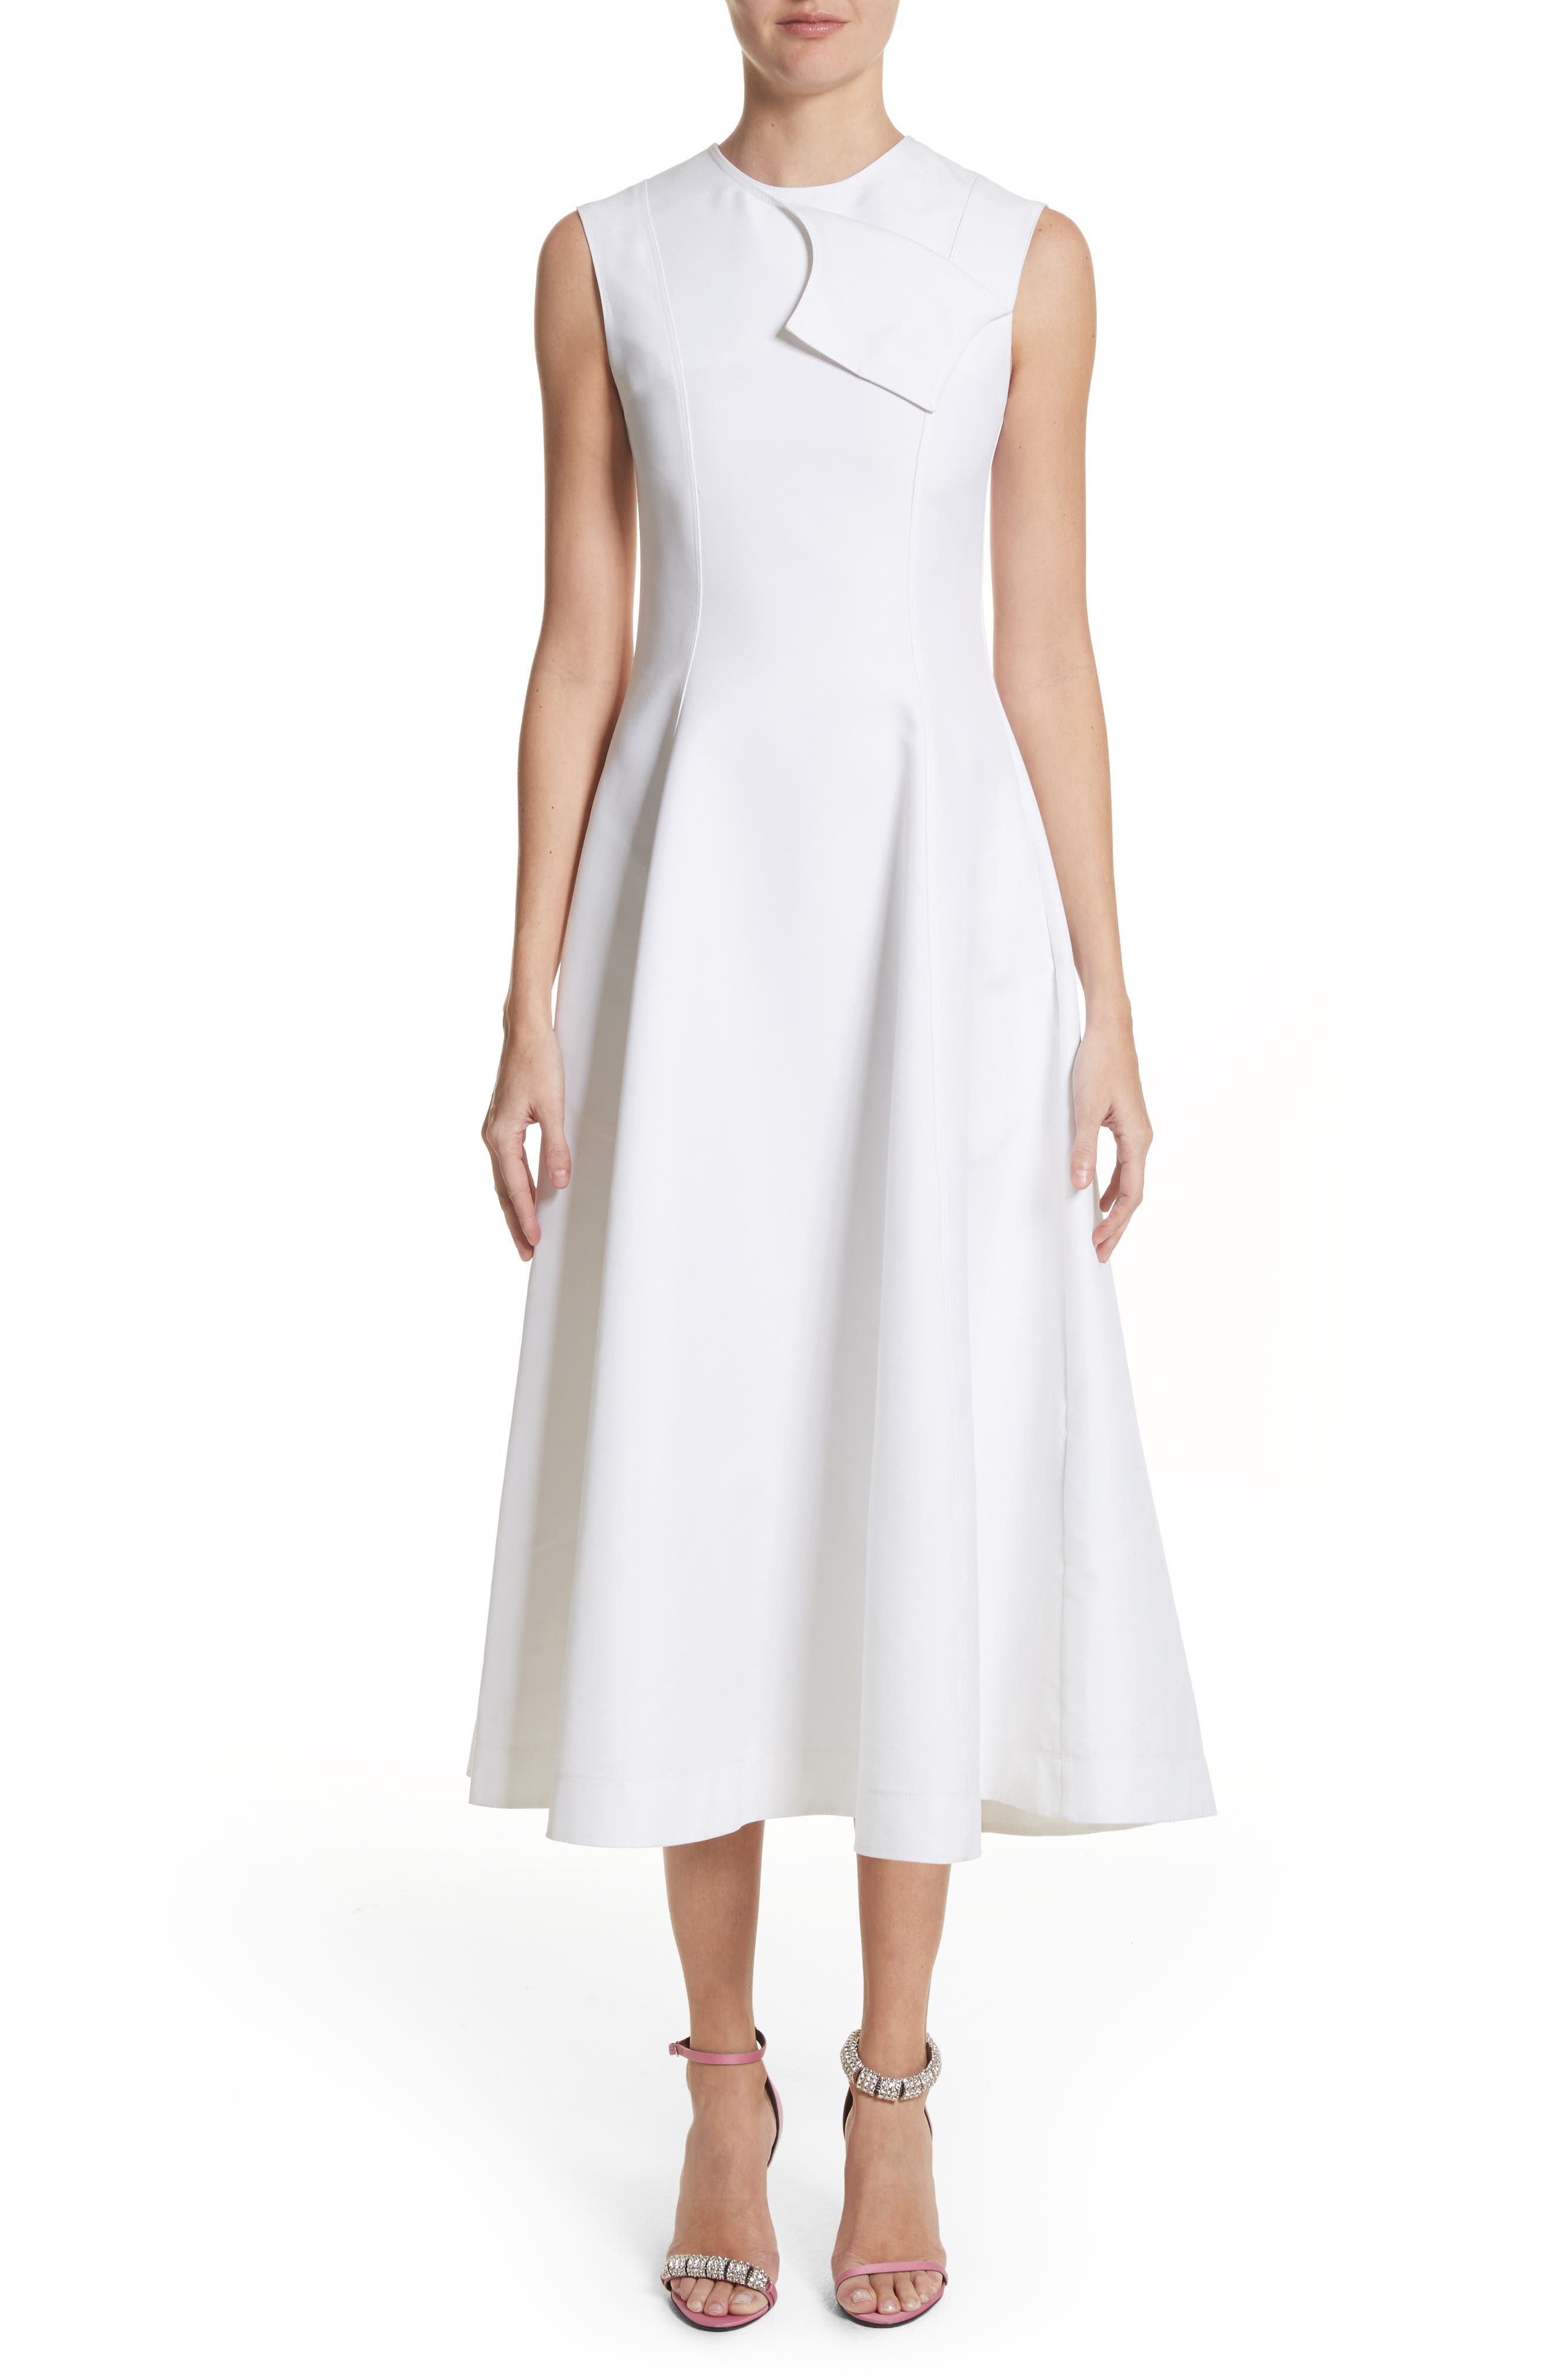 CALVIN KLEIN 205W39NYC Flap Detail A-Line Dress